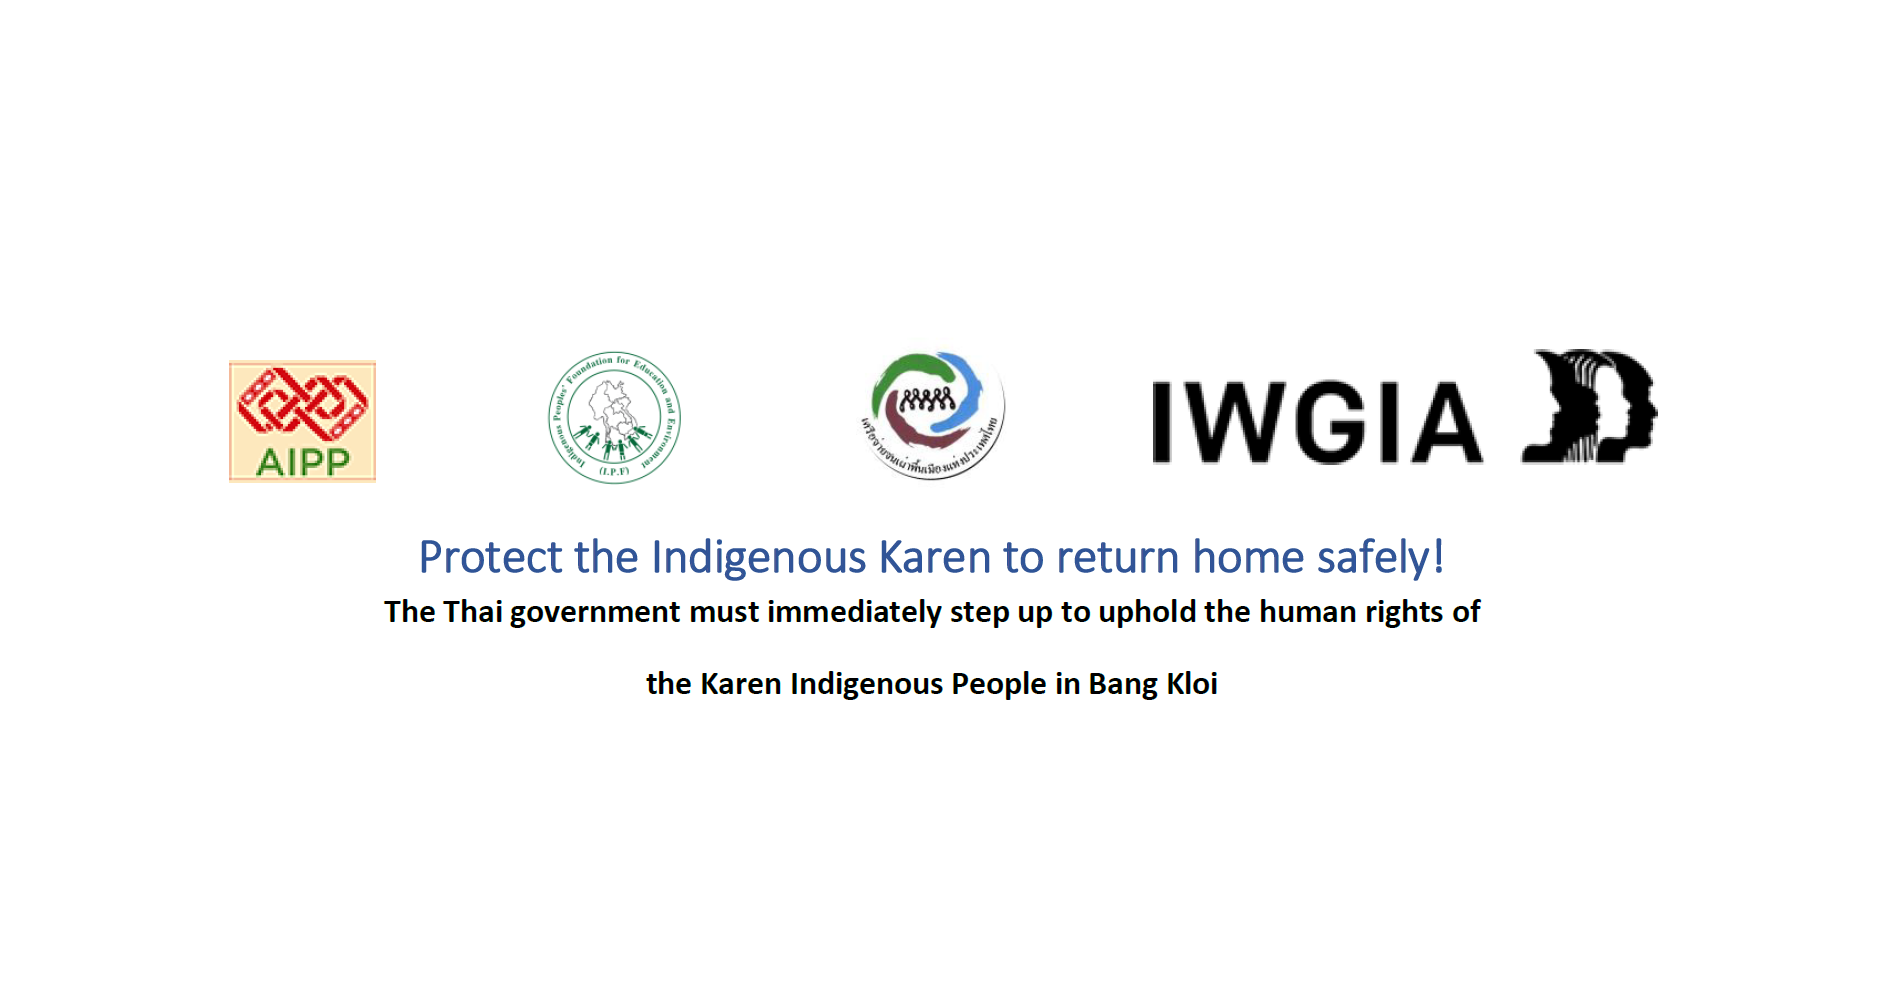 Protect the Indigenous Karen to return home safely